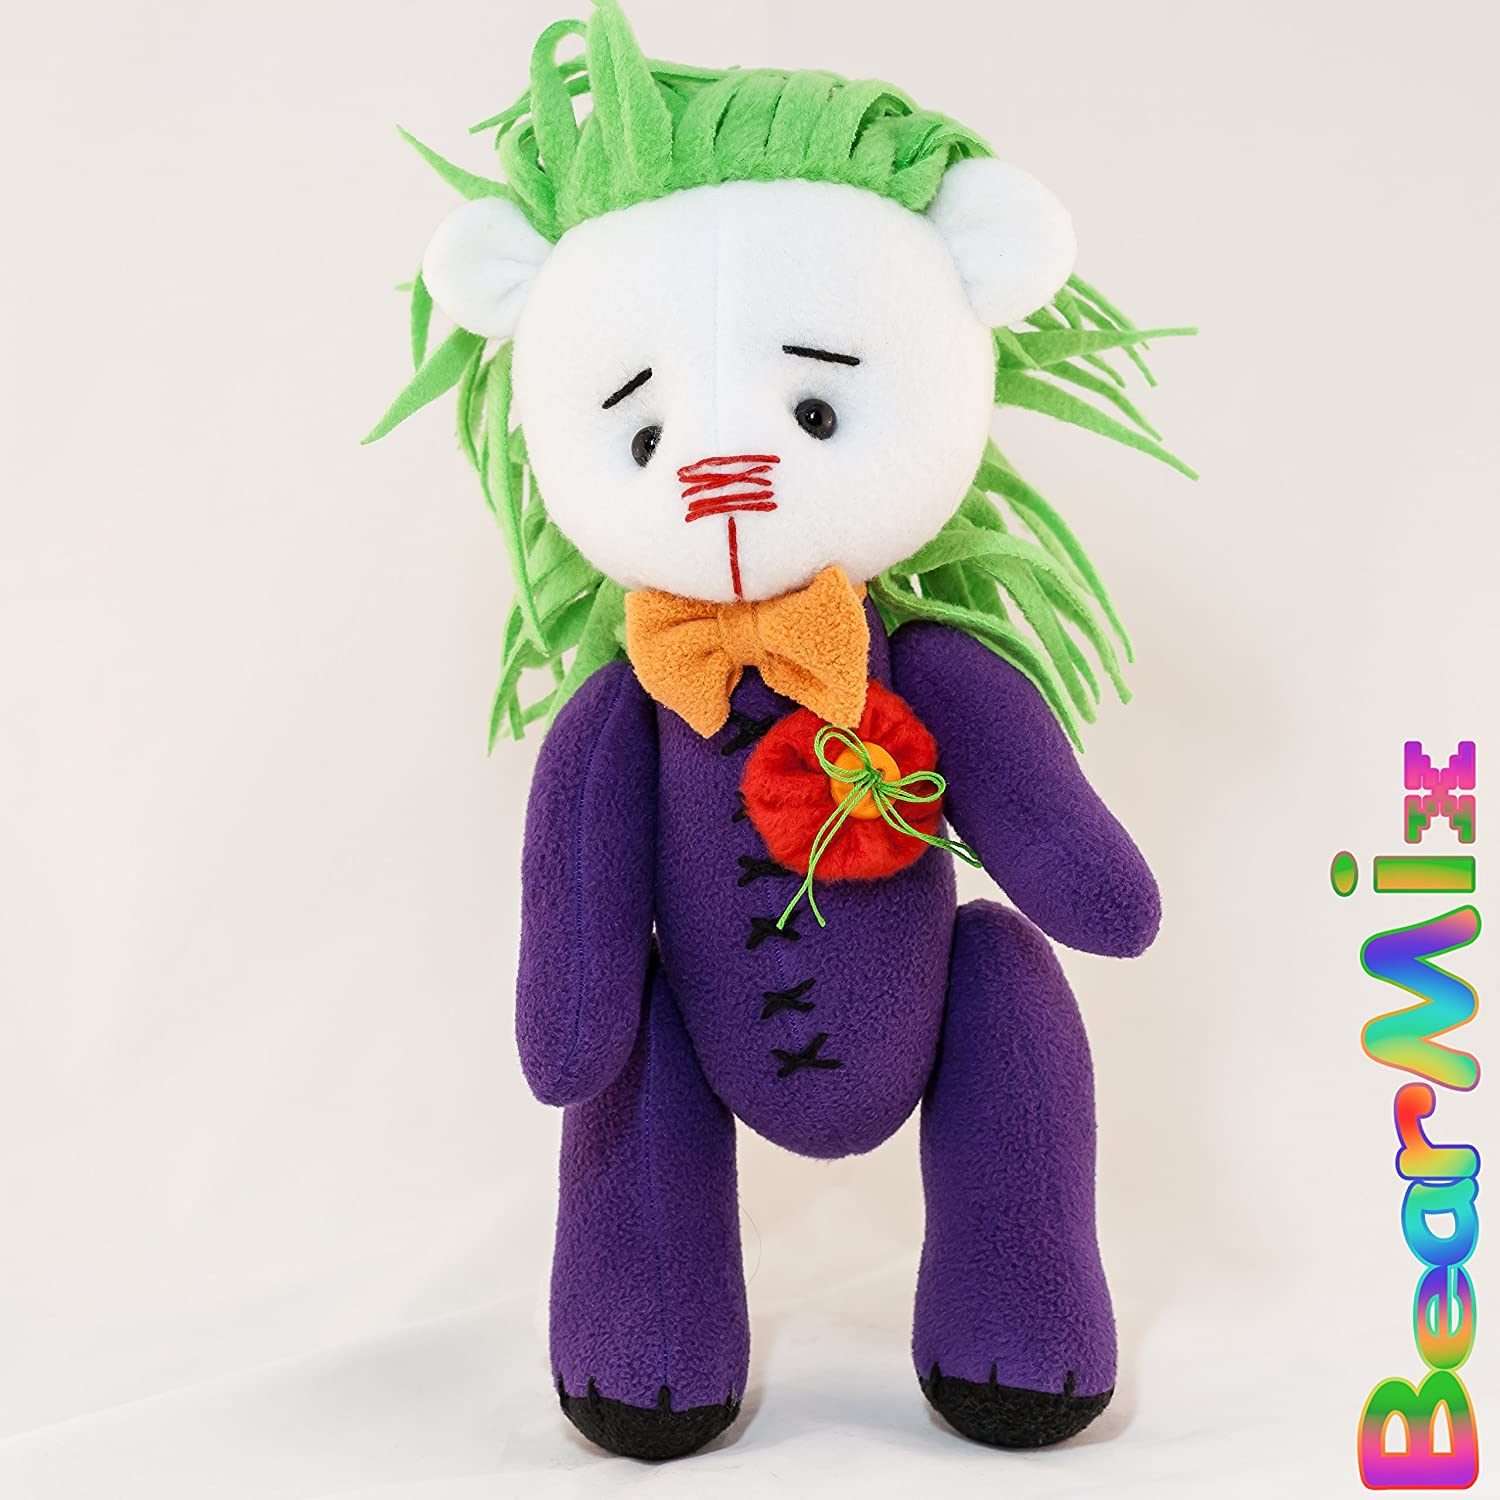 Joker bear - dc anti hero movie comic plush toy Injustice League Batman